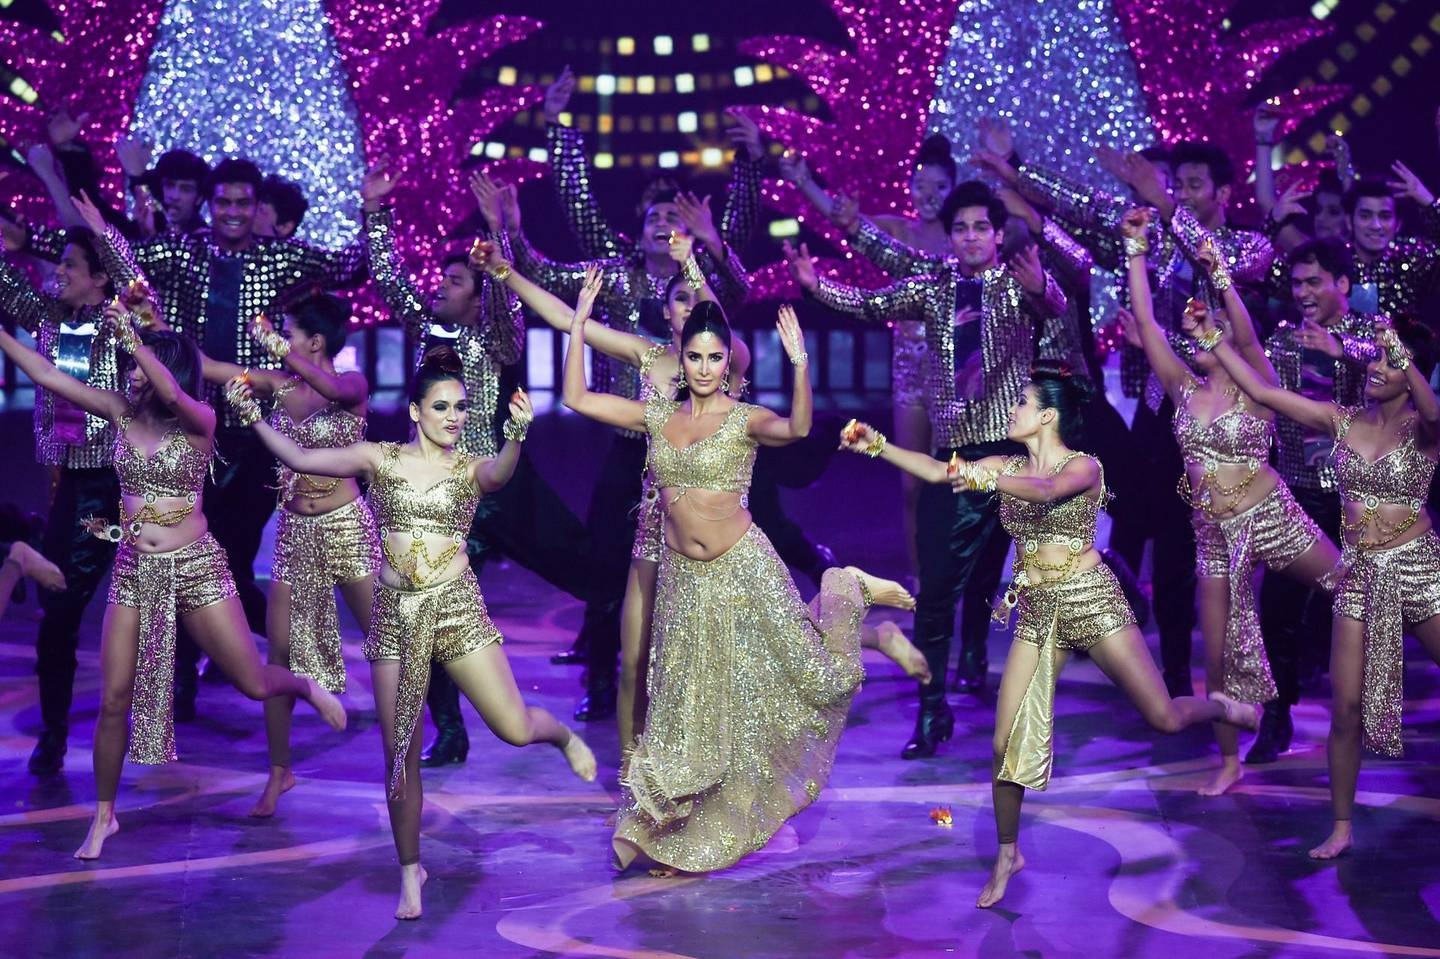 Bollywood actress Katrina Kaif performs on stage during the 20th International Indian Film Academy (IIFA) Awards at NSCI Dome in Mumbai on September 18, 2019. / AFP / INDRANIL MUKHERJEE